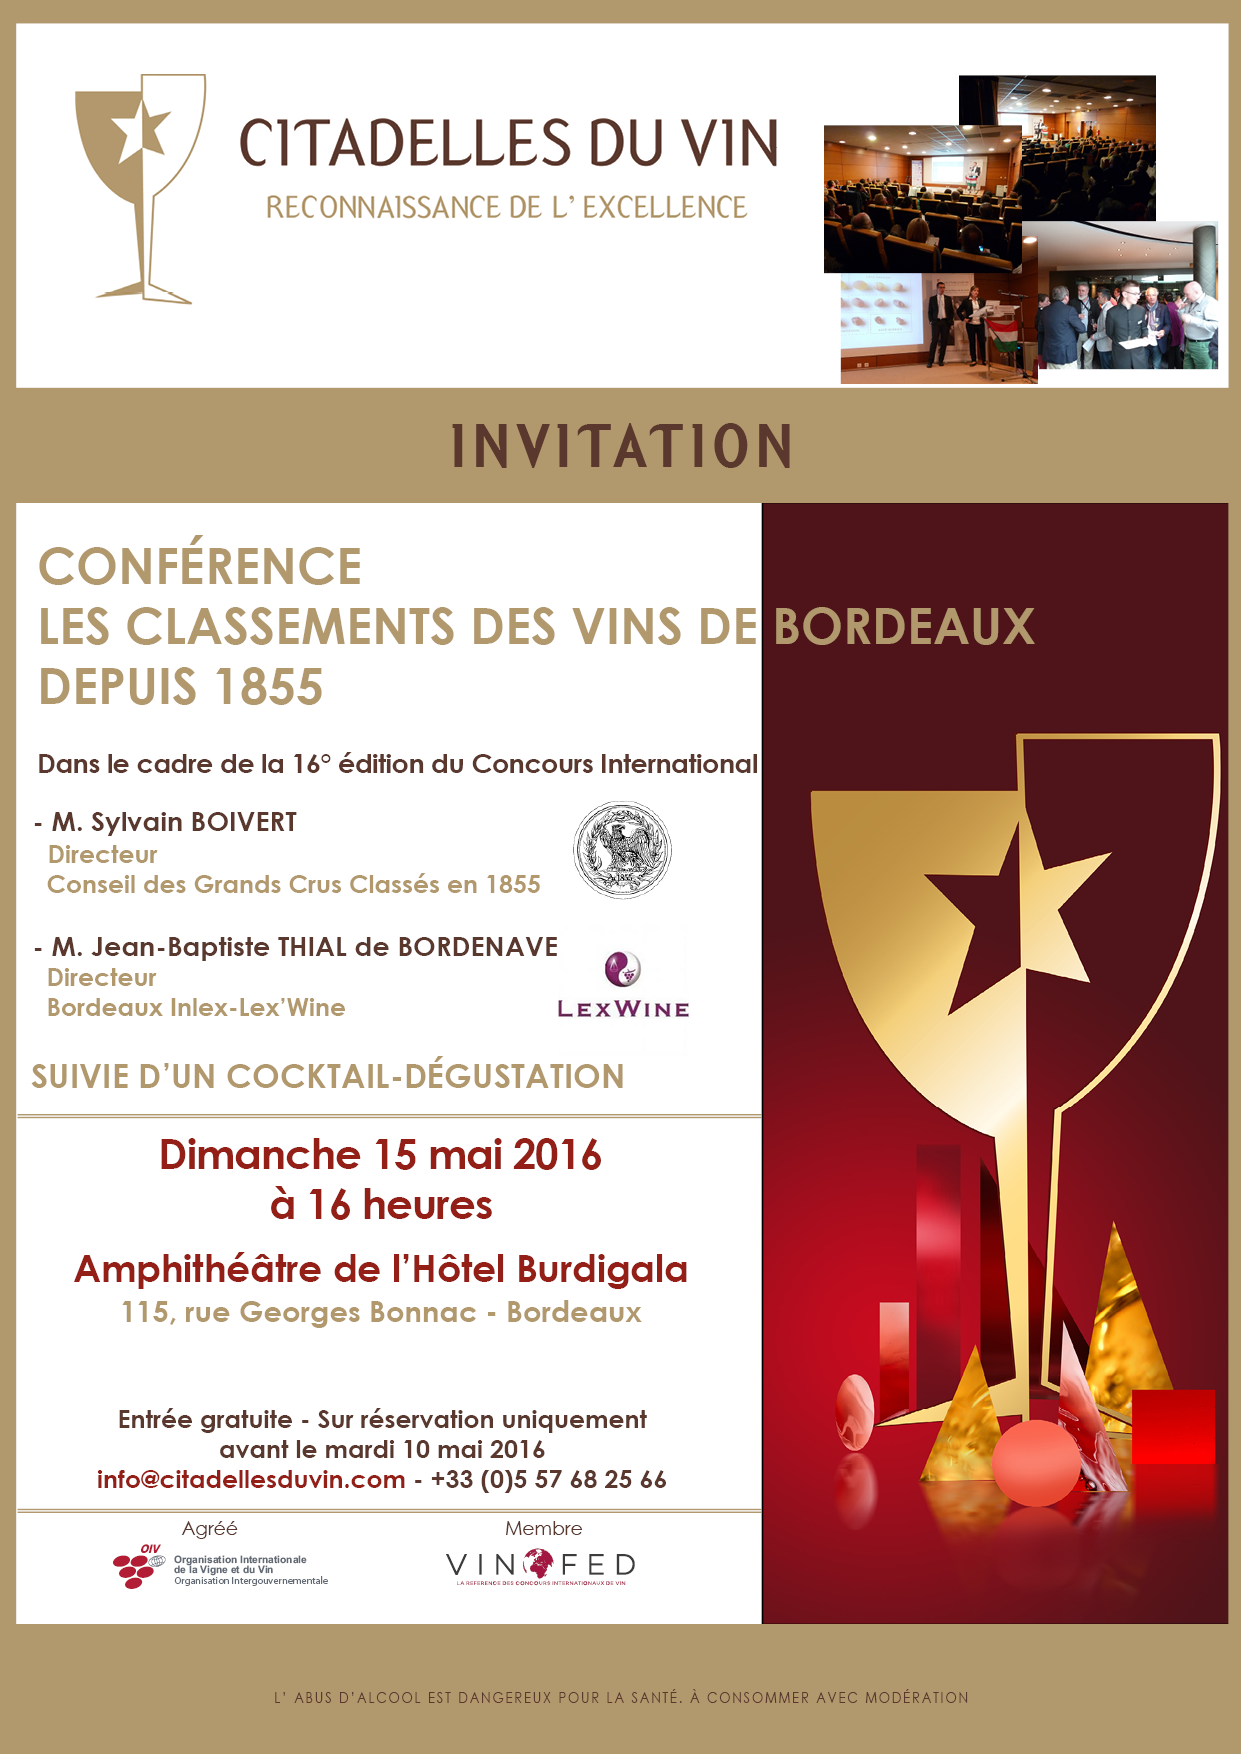 Invitation conference Citadelles du Vin 2016